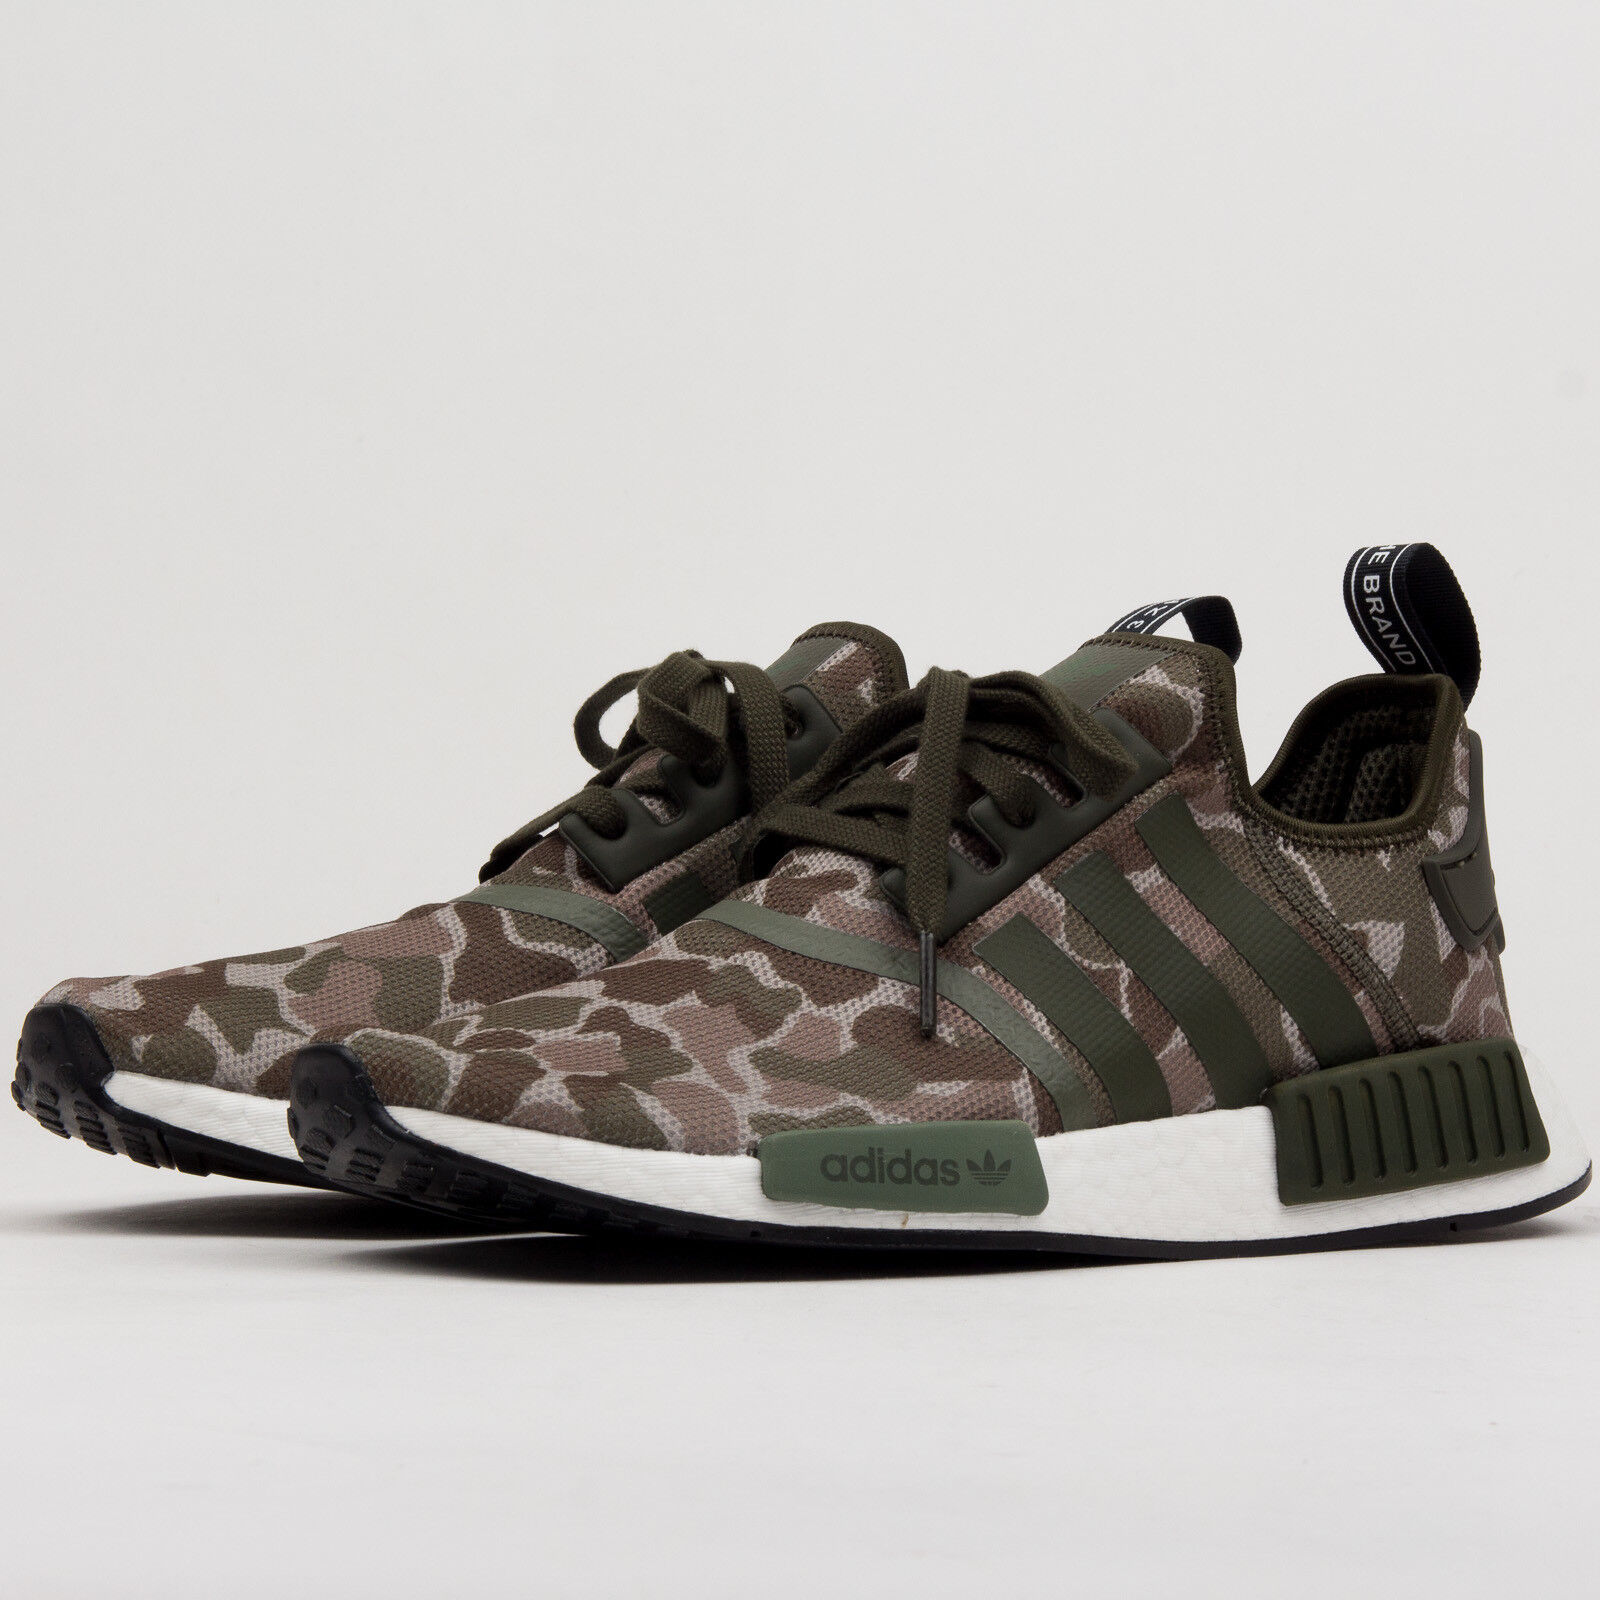 ADIDAS nmd_r1 Sesame/Trace Cargo/base 1/3), verde US 11 (EUR 45 1/3), Cargo/base Uomini b532a8